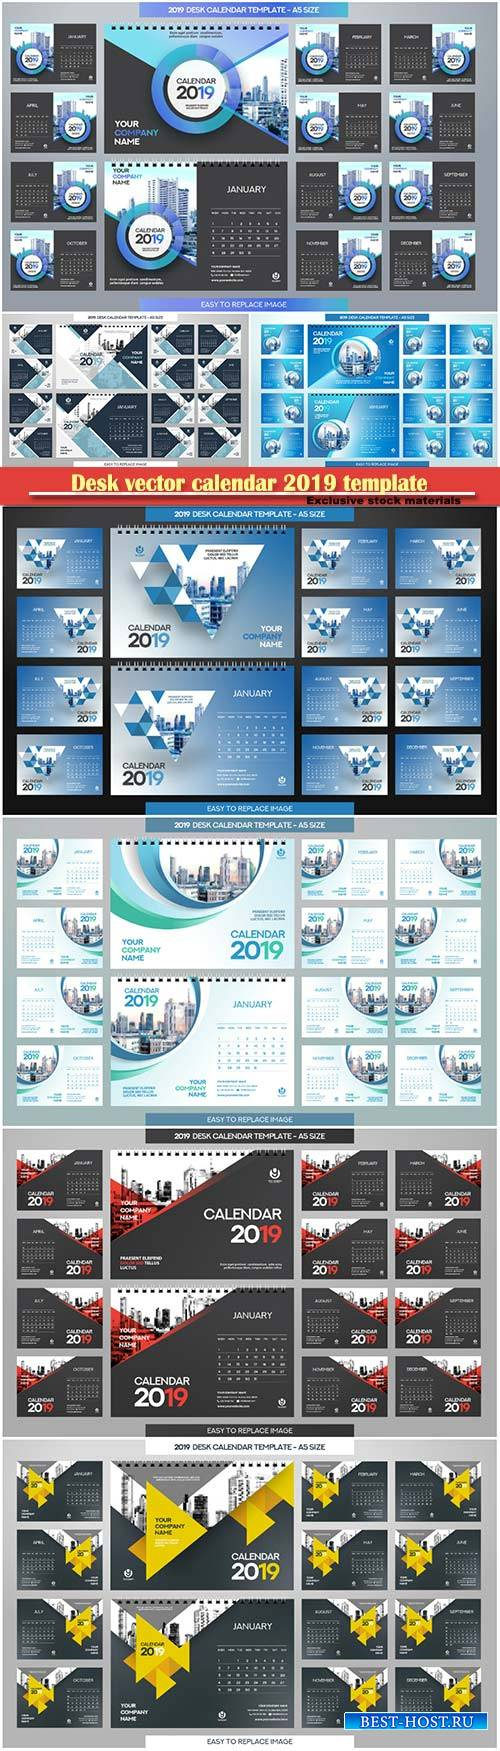 Desk vector calendar 2019 template, 12 months included